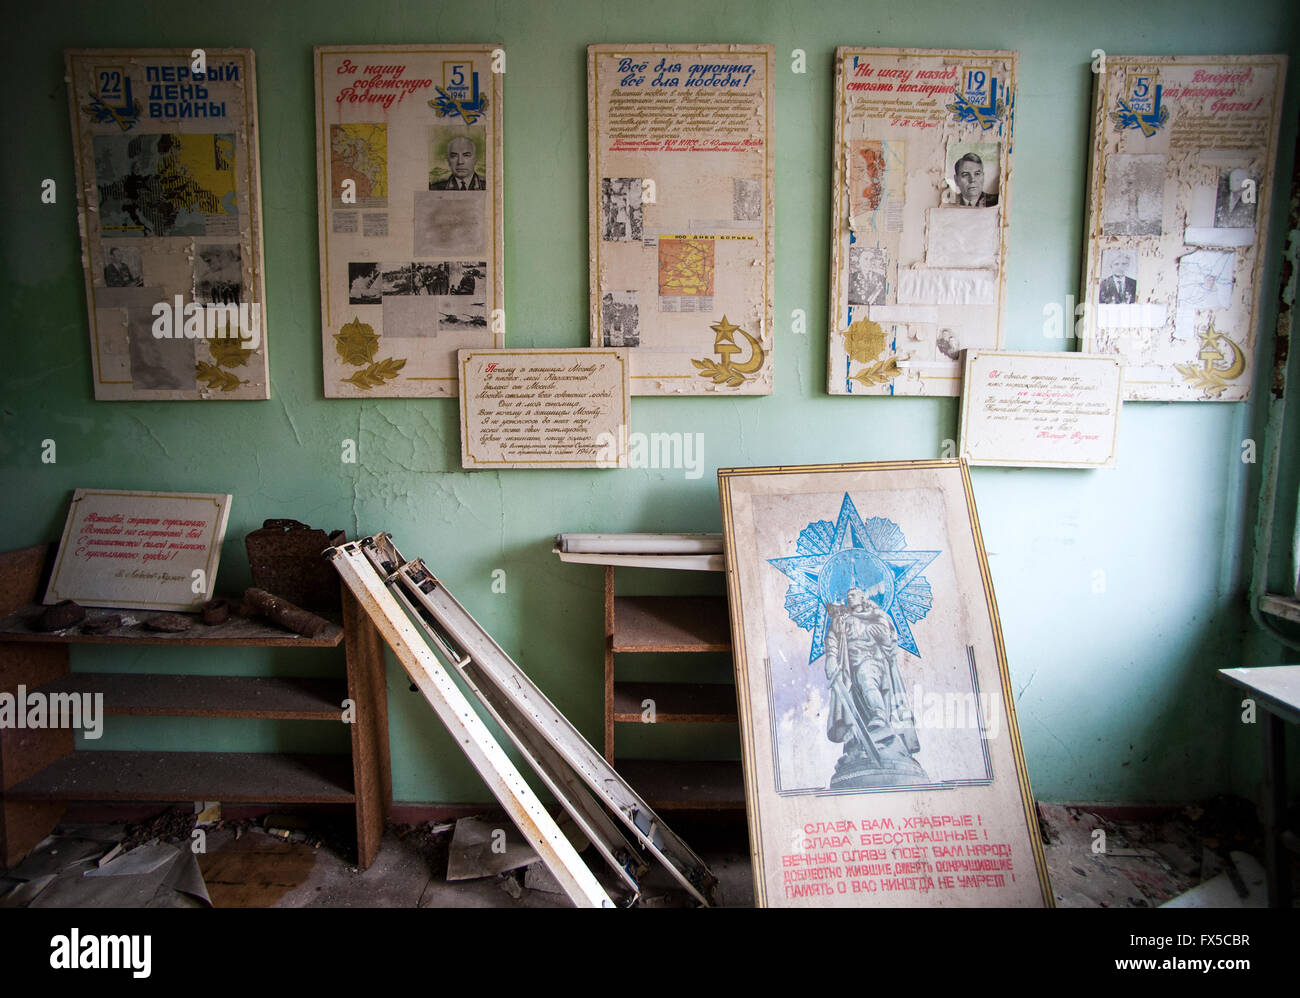 Schoolroom in the abandoned city of Pripyat, Ukraine. Pripyat was abandoned following the Chernobyl nuclear disaster. - Stock Image